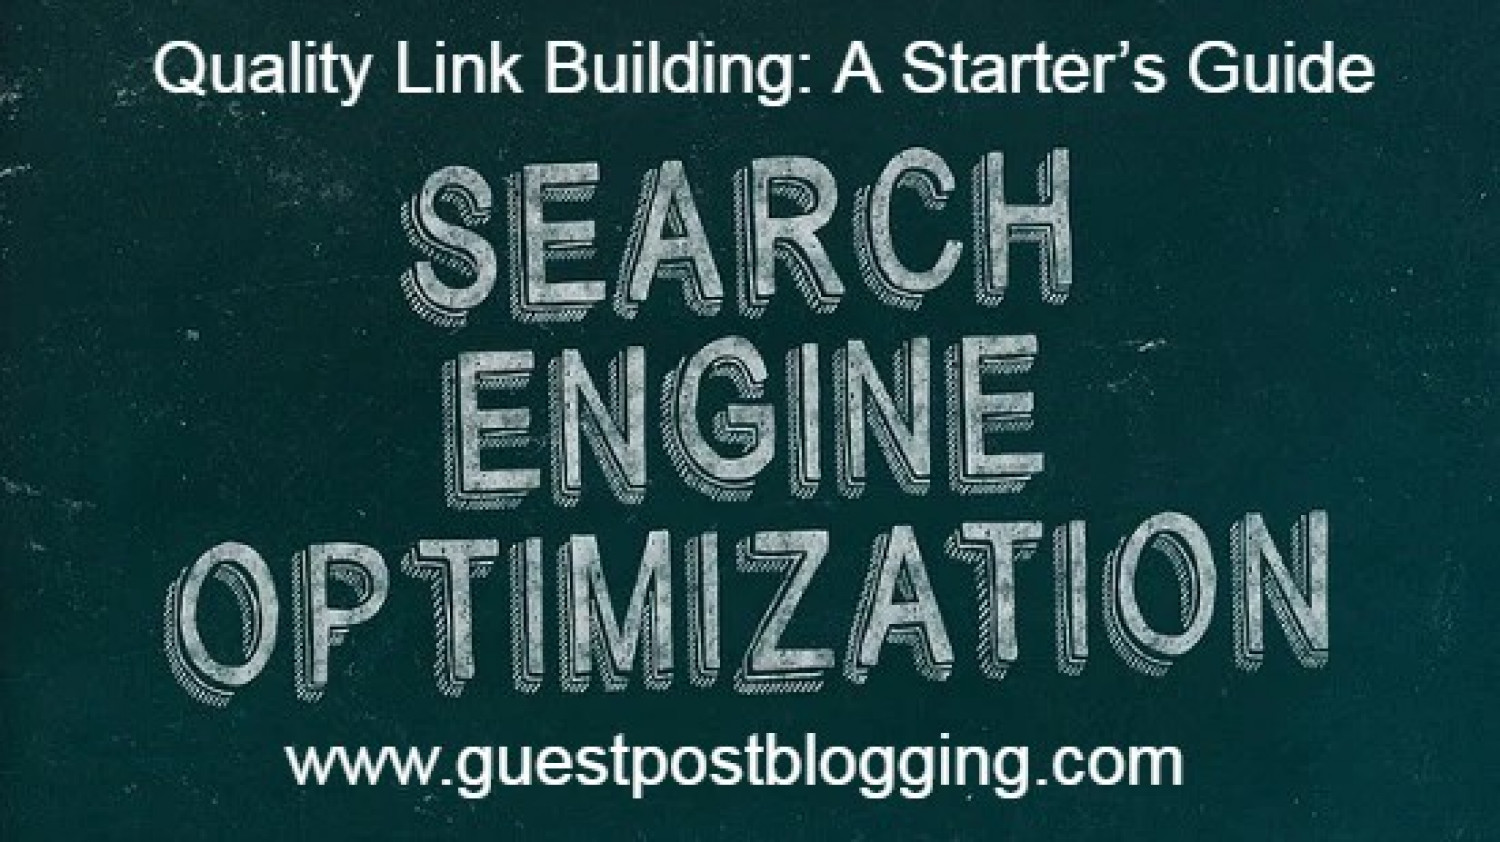 Quality Link Building: A Starter's Guide Infographic